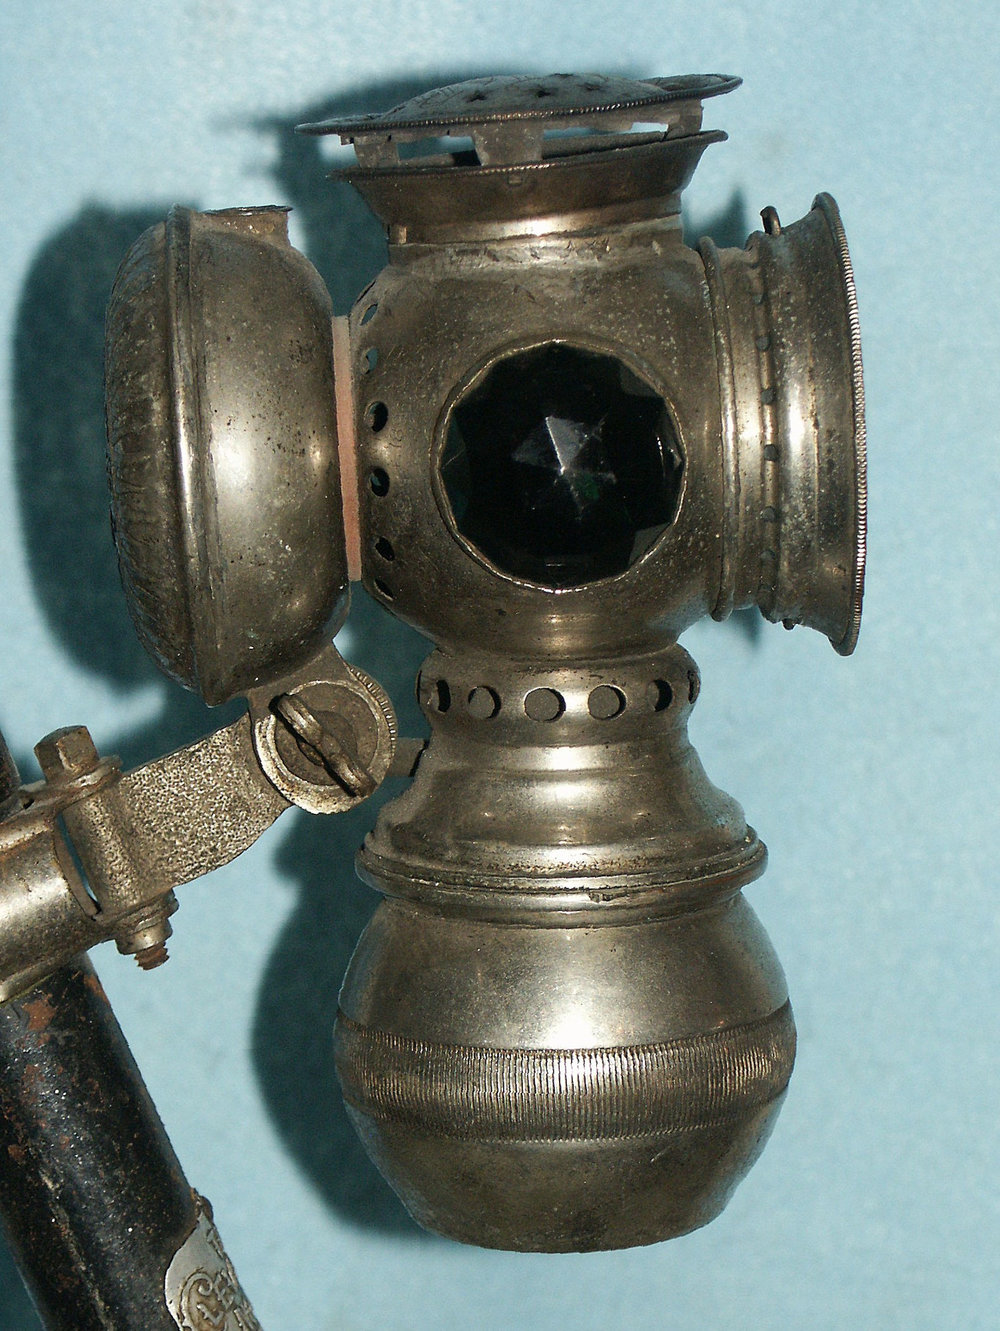 Carbide Bike Lamp.jpg